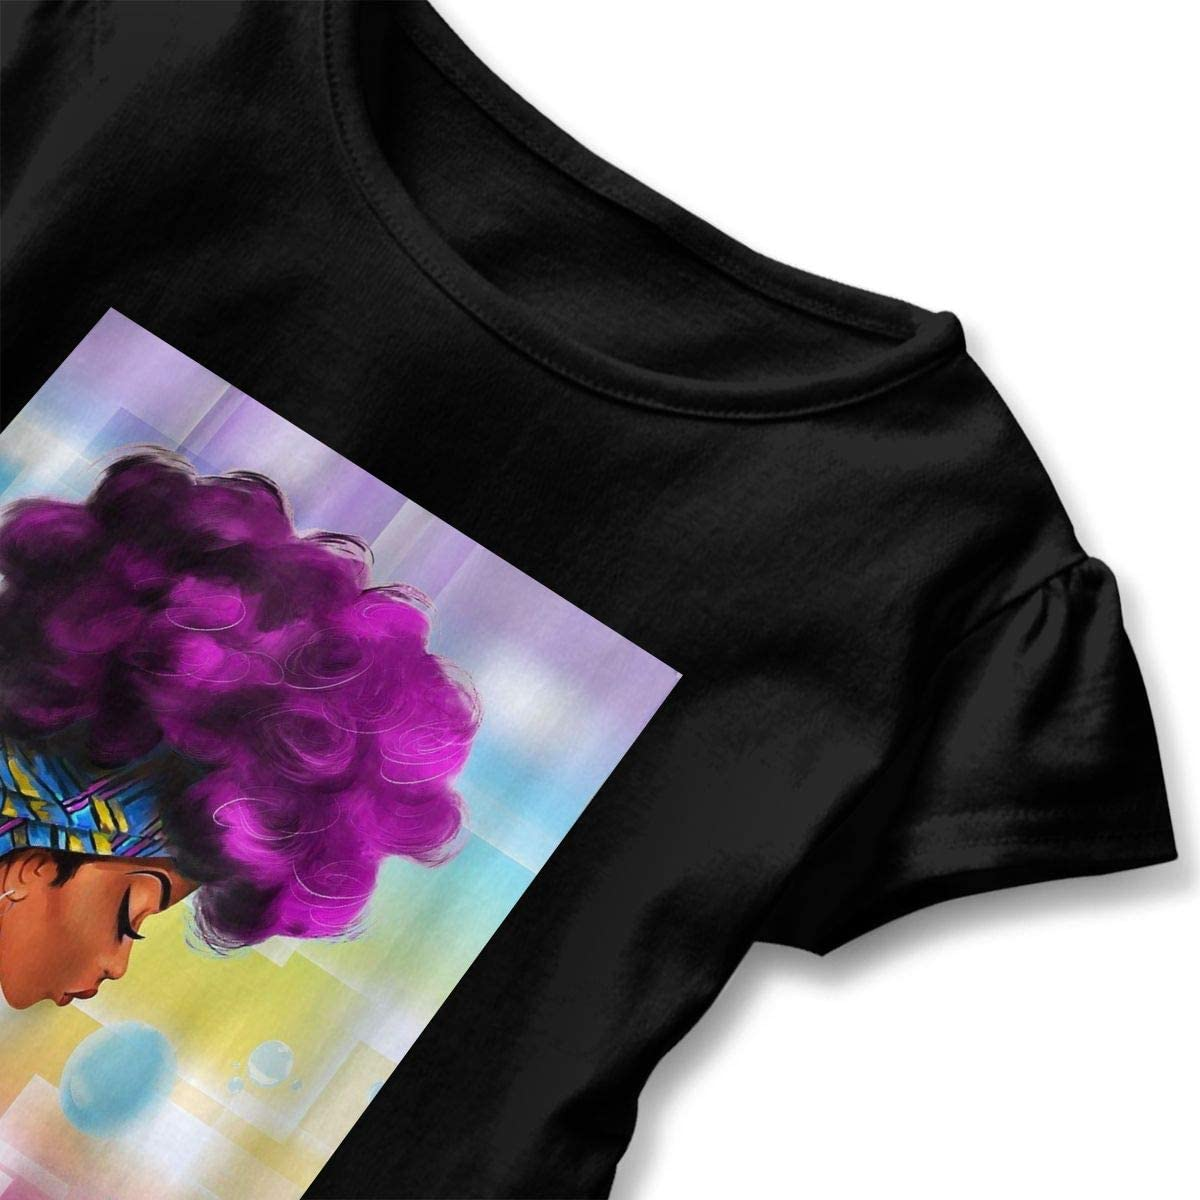 African Woman with Purple Hair Baby Girl Short Sleeve T-Shirt Flounced Cotton Tops for 2-6 Years Old Baby